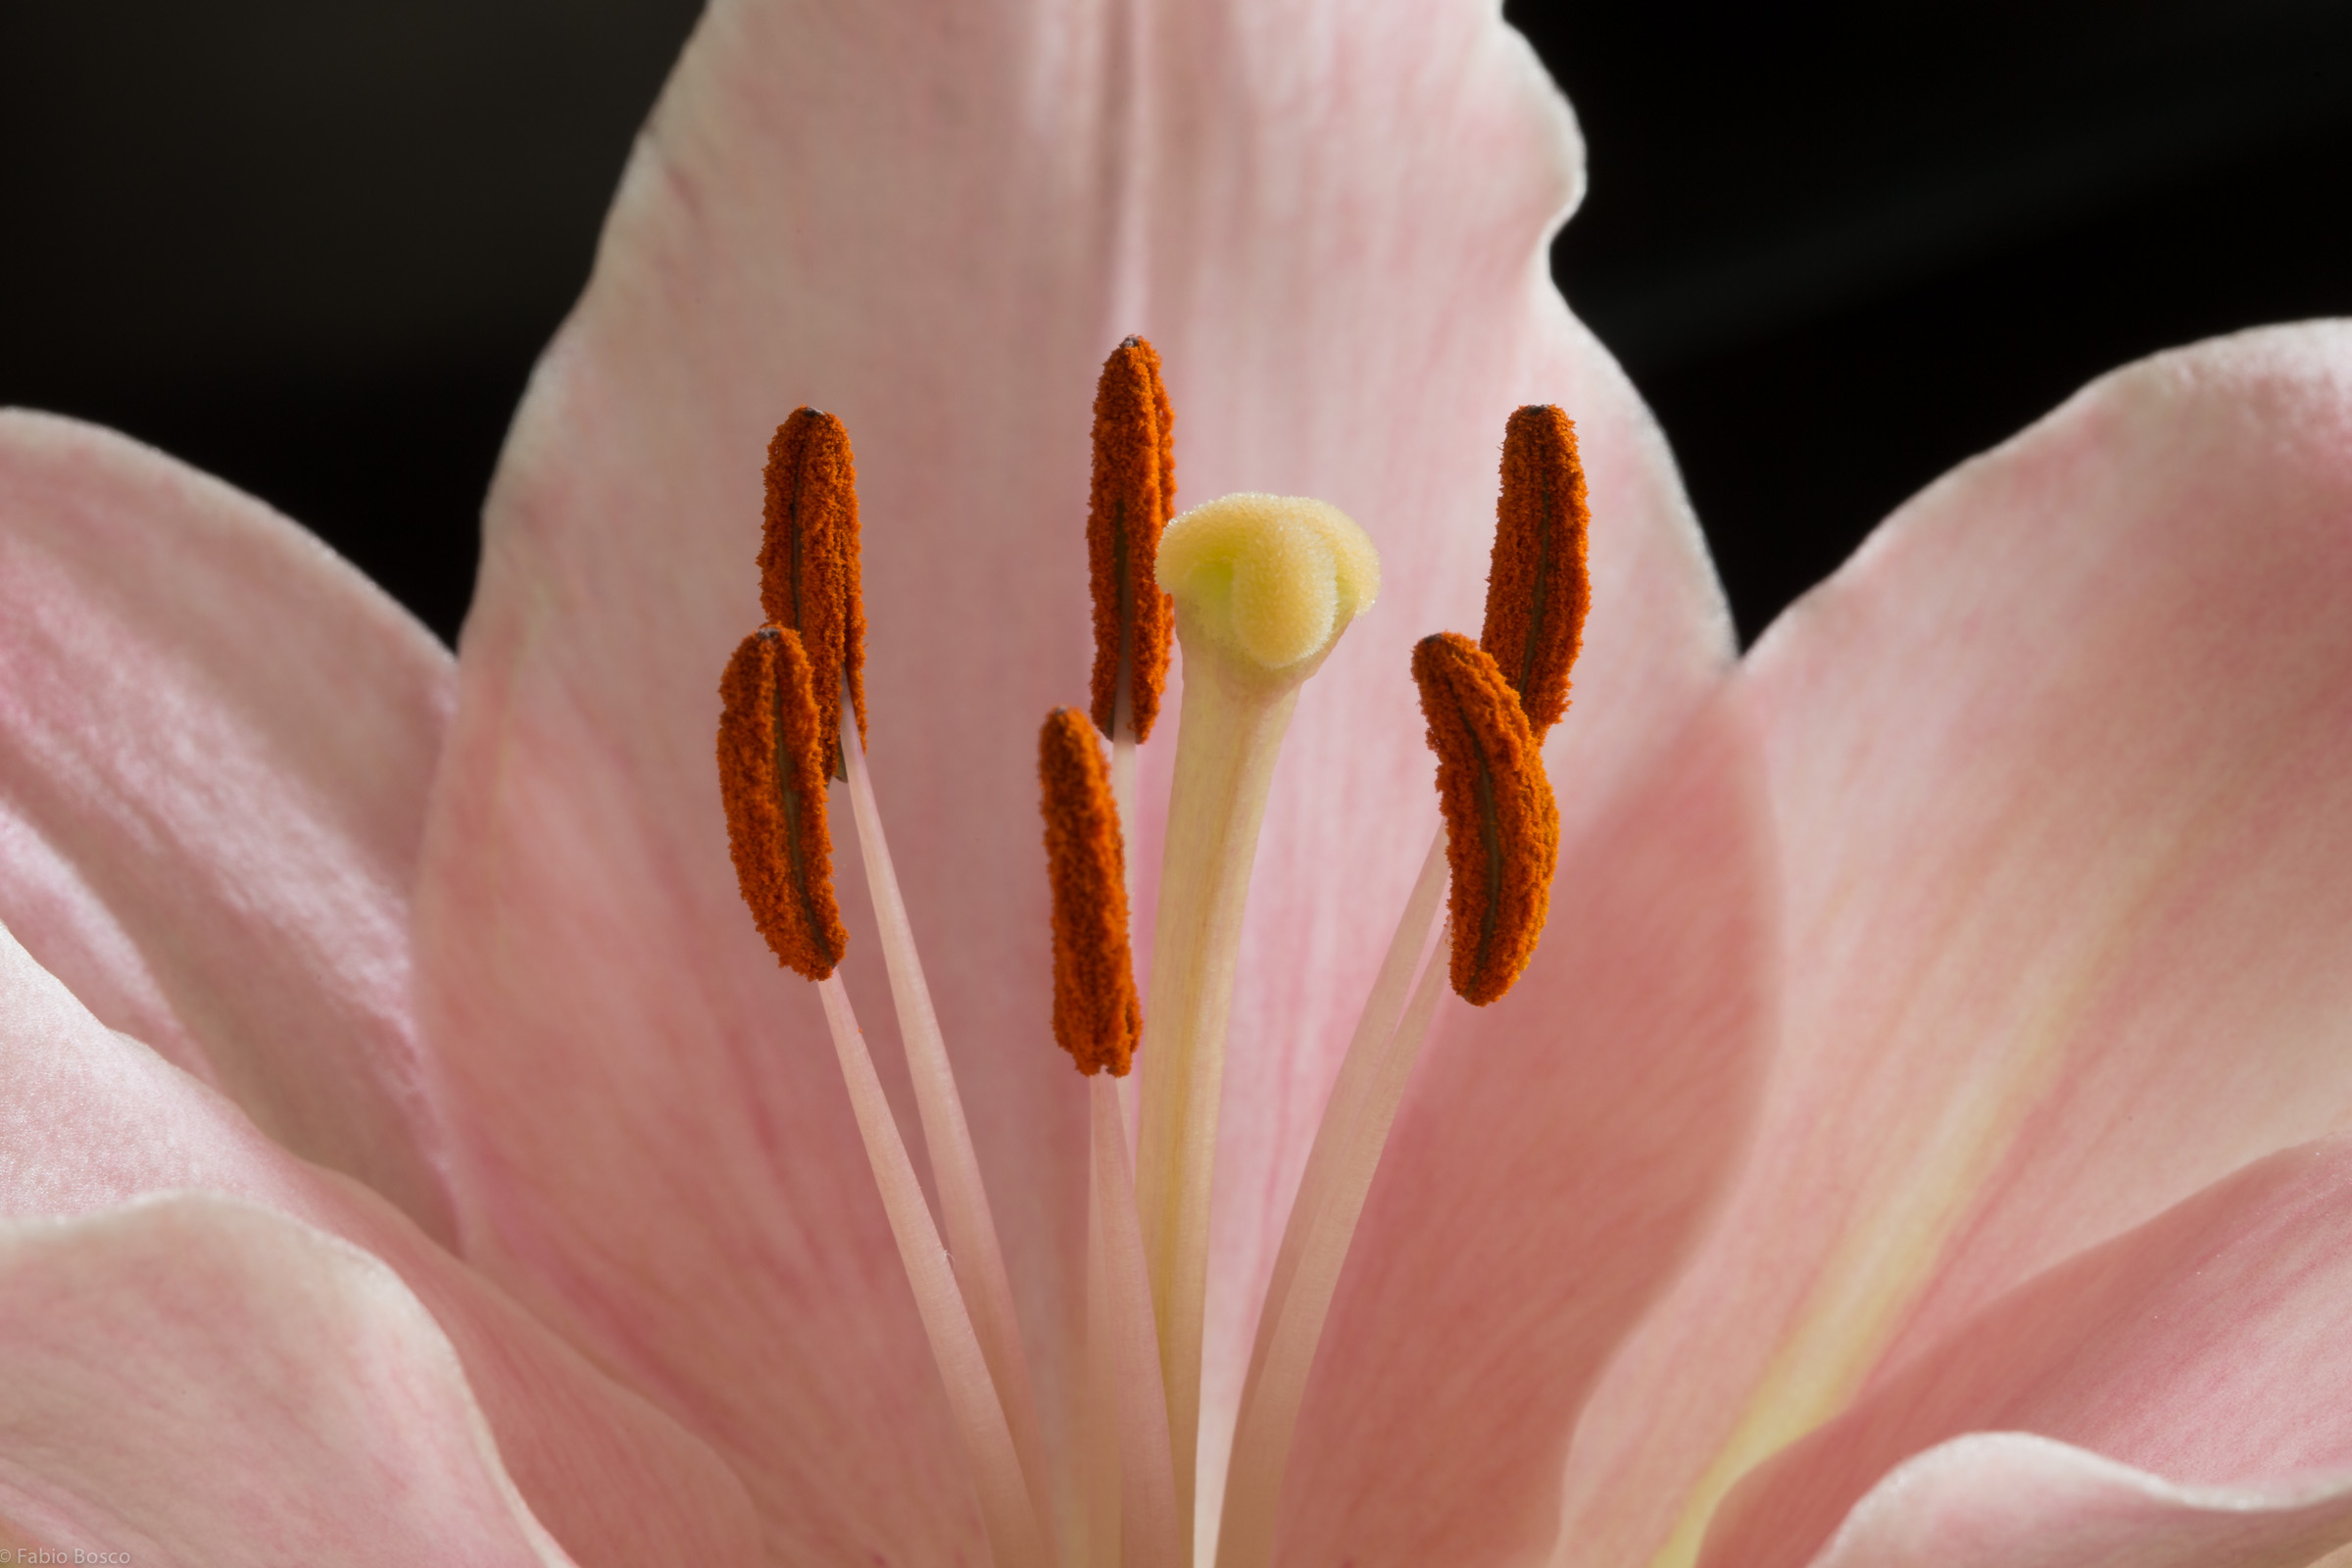 A flowers Stigma and Anthers